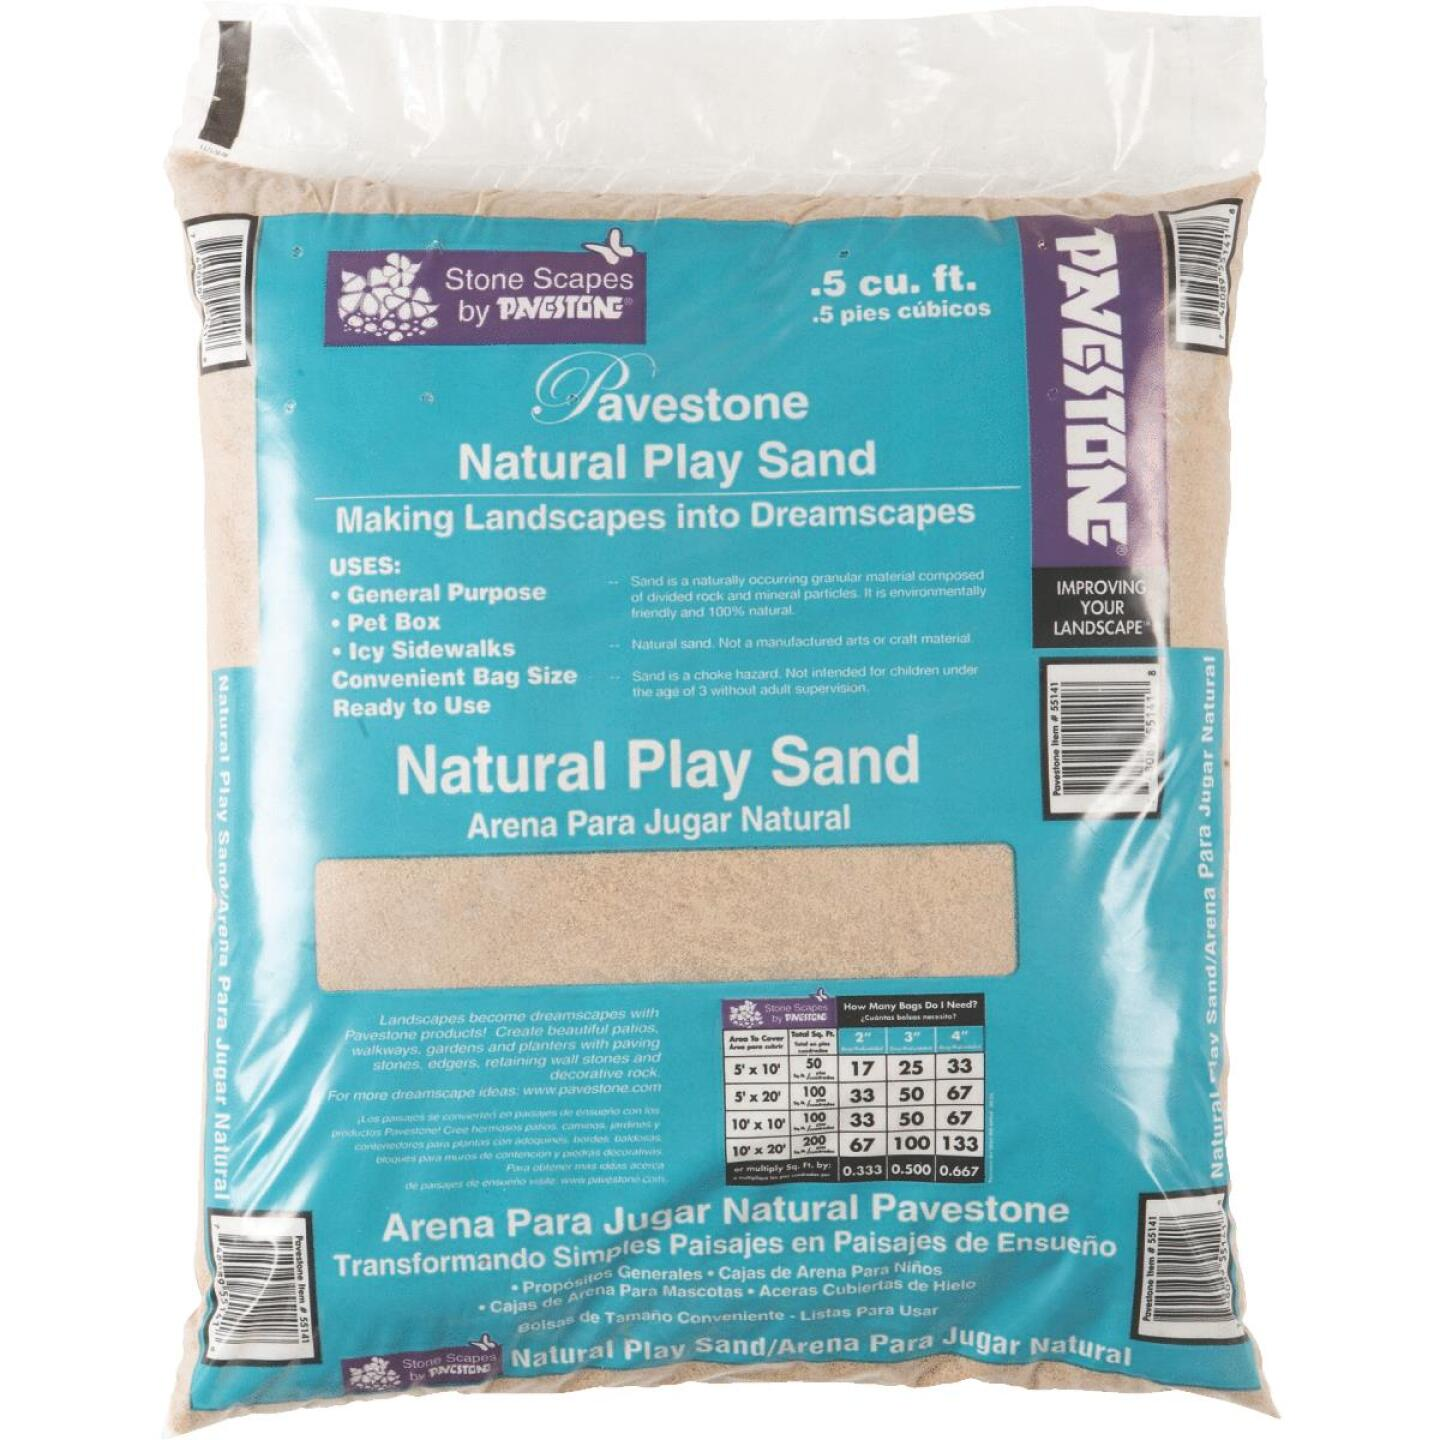 Pavestone 0.5 Cu. Ft. Play Sand Image 1